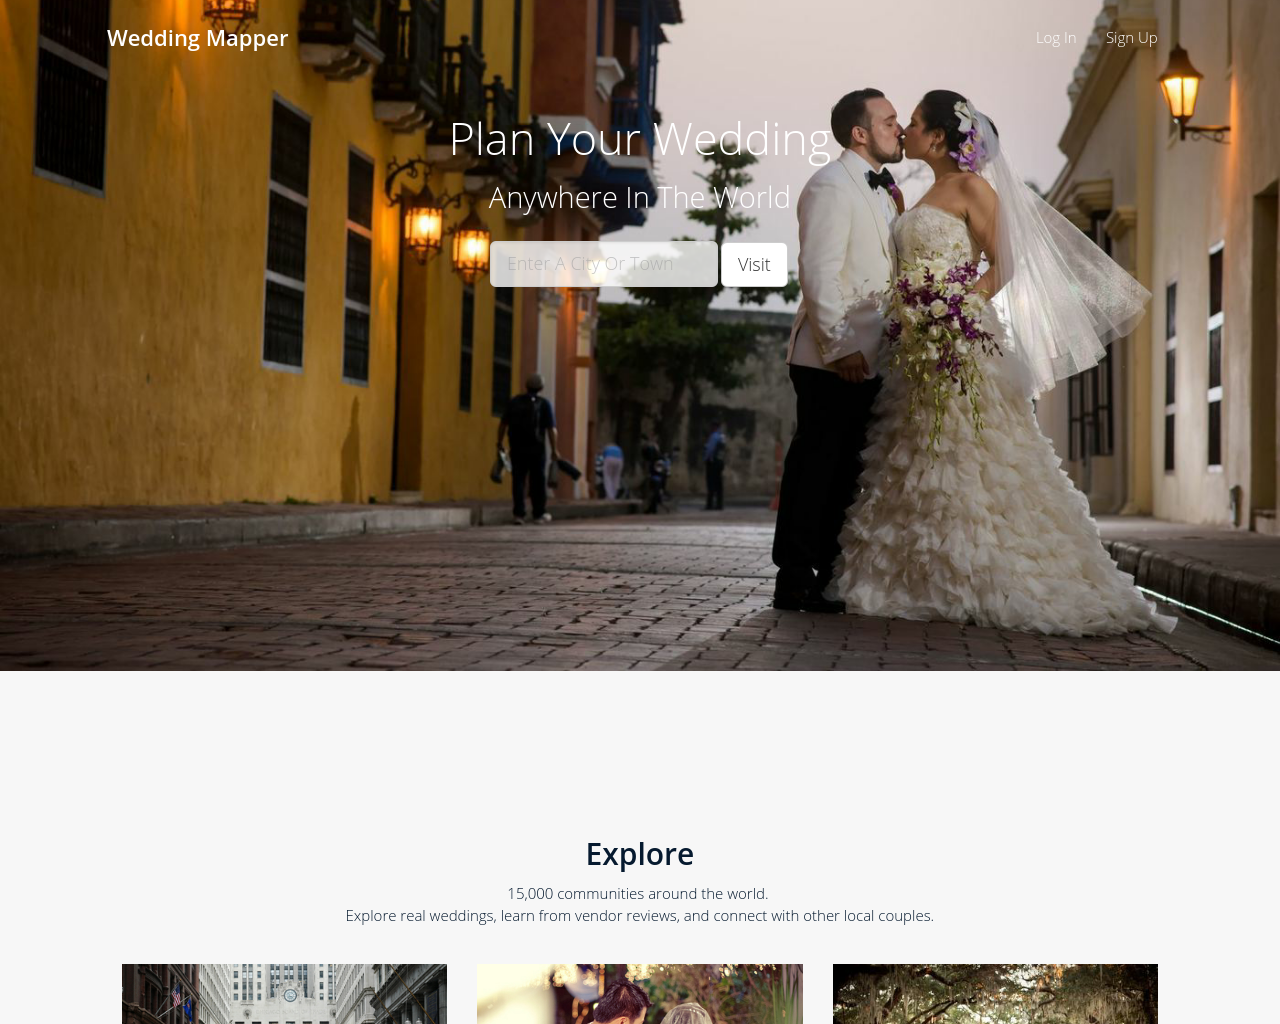 Wedding-Mapper-Advertising-Reviews-Pricing